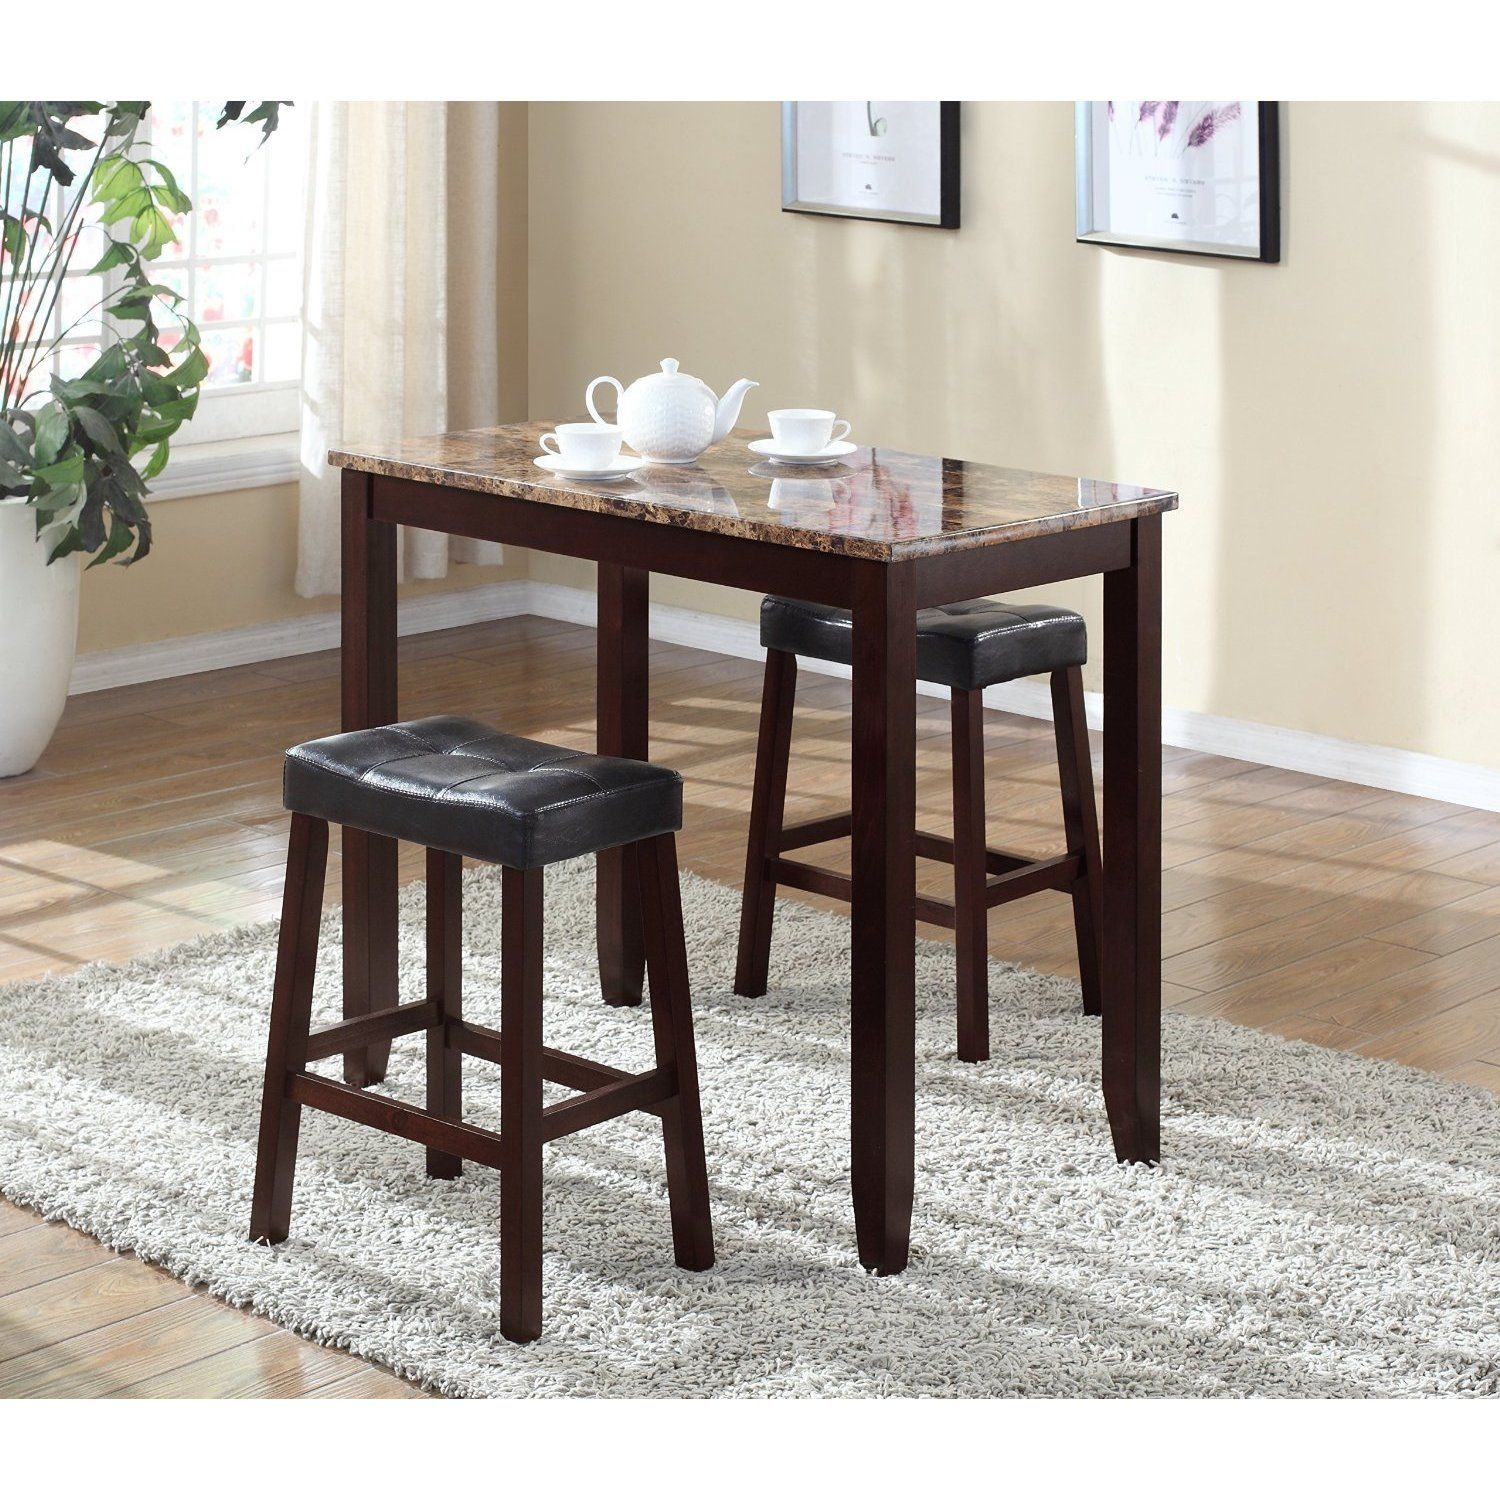 3 Piece Counter Height Table And Saddleback Stools With